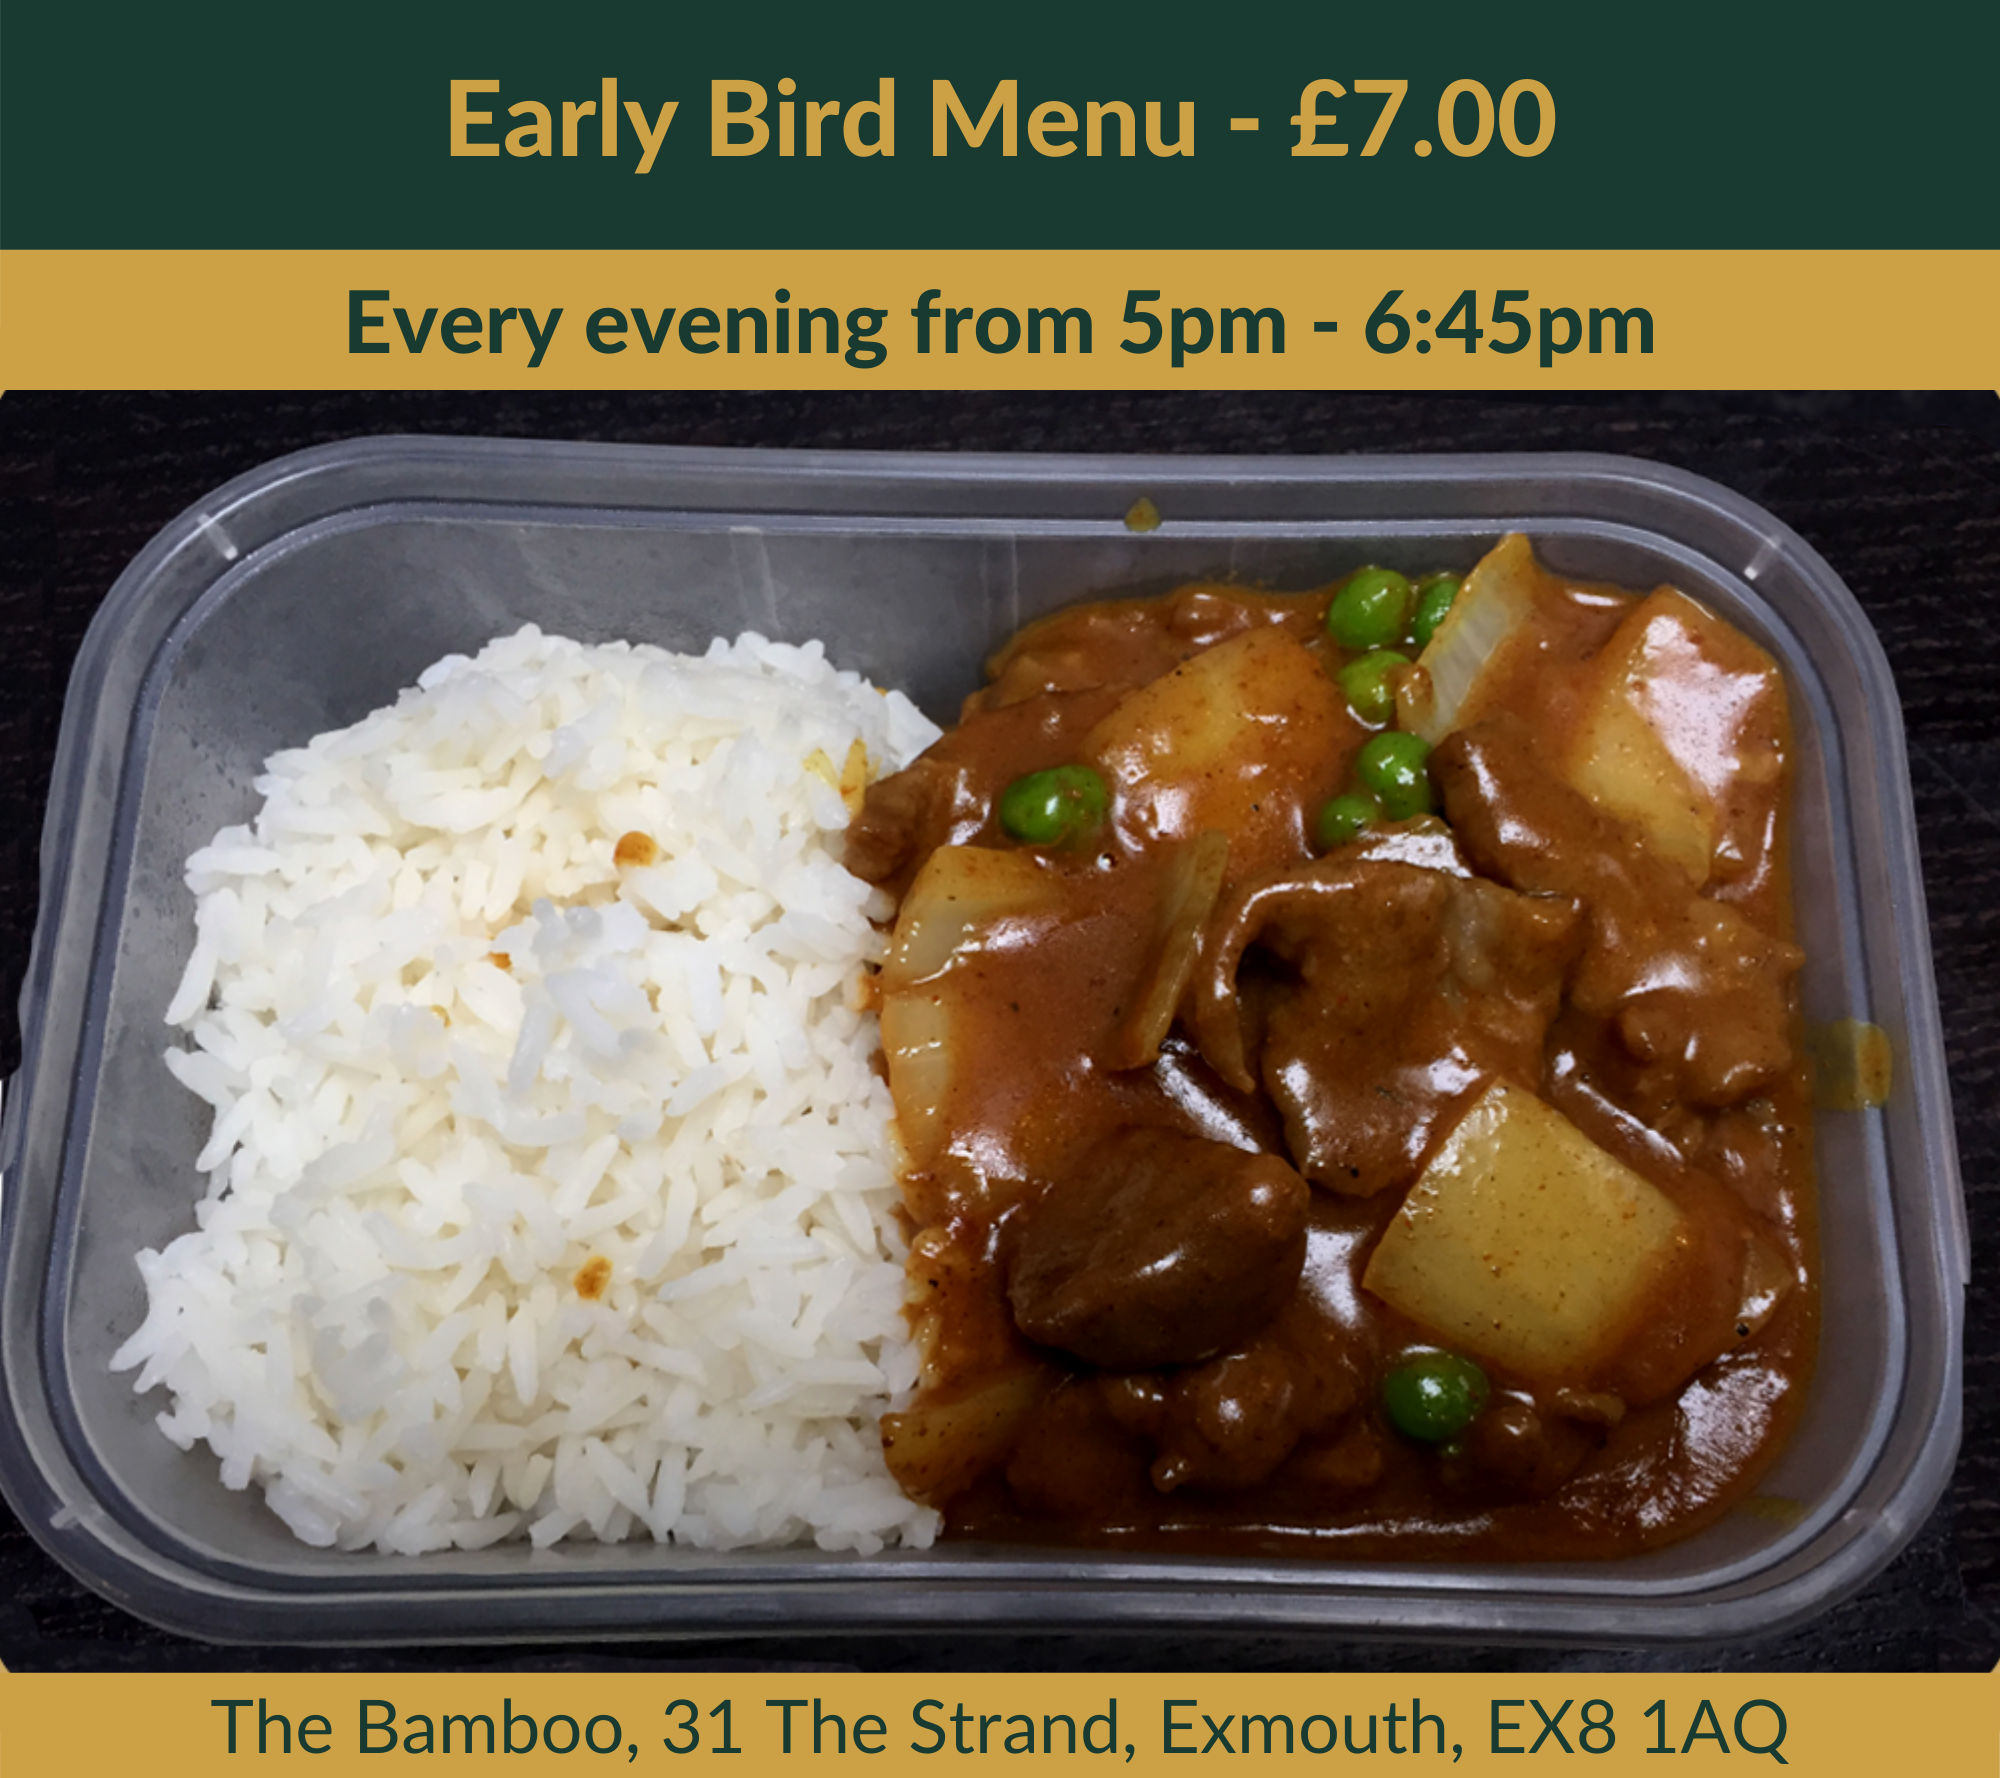 The Bamboo Exmouth - Early Bird Menu Curry